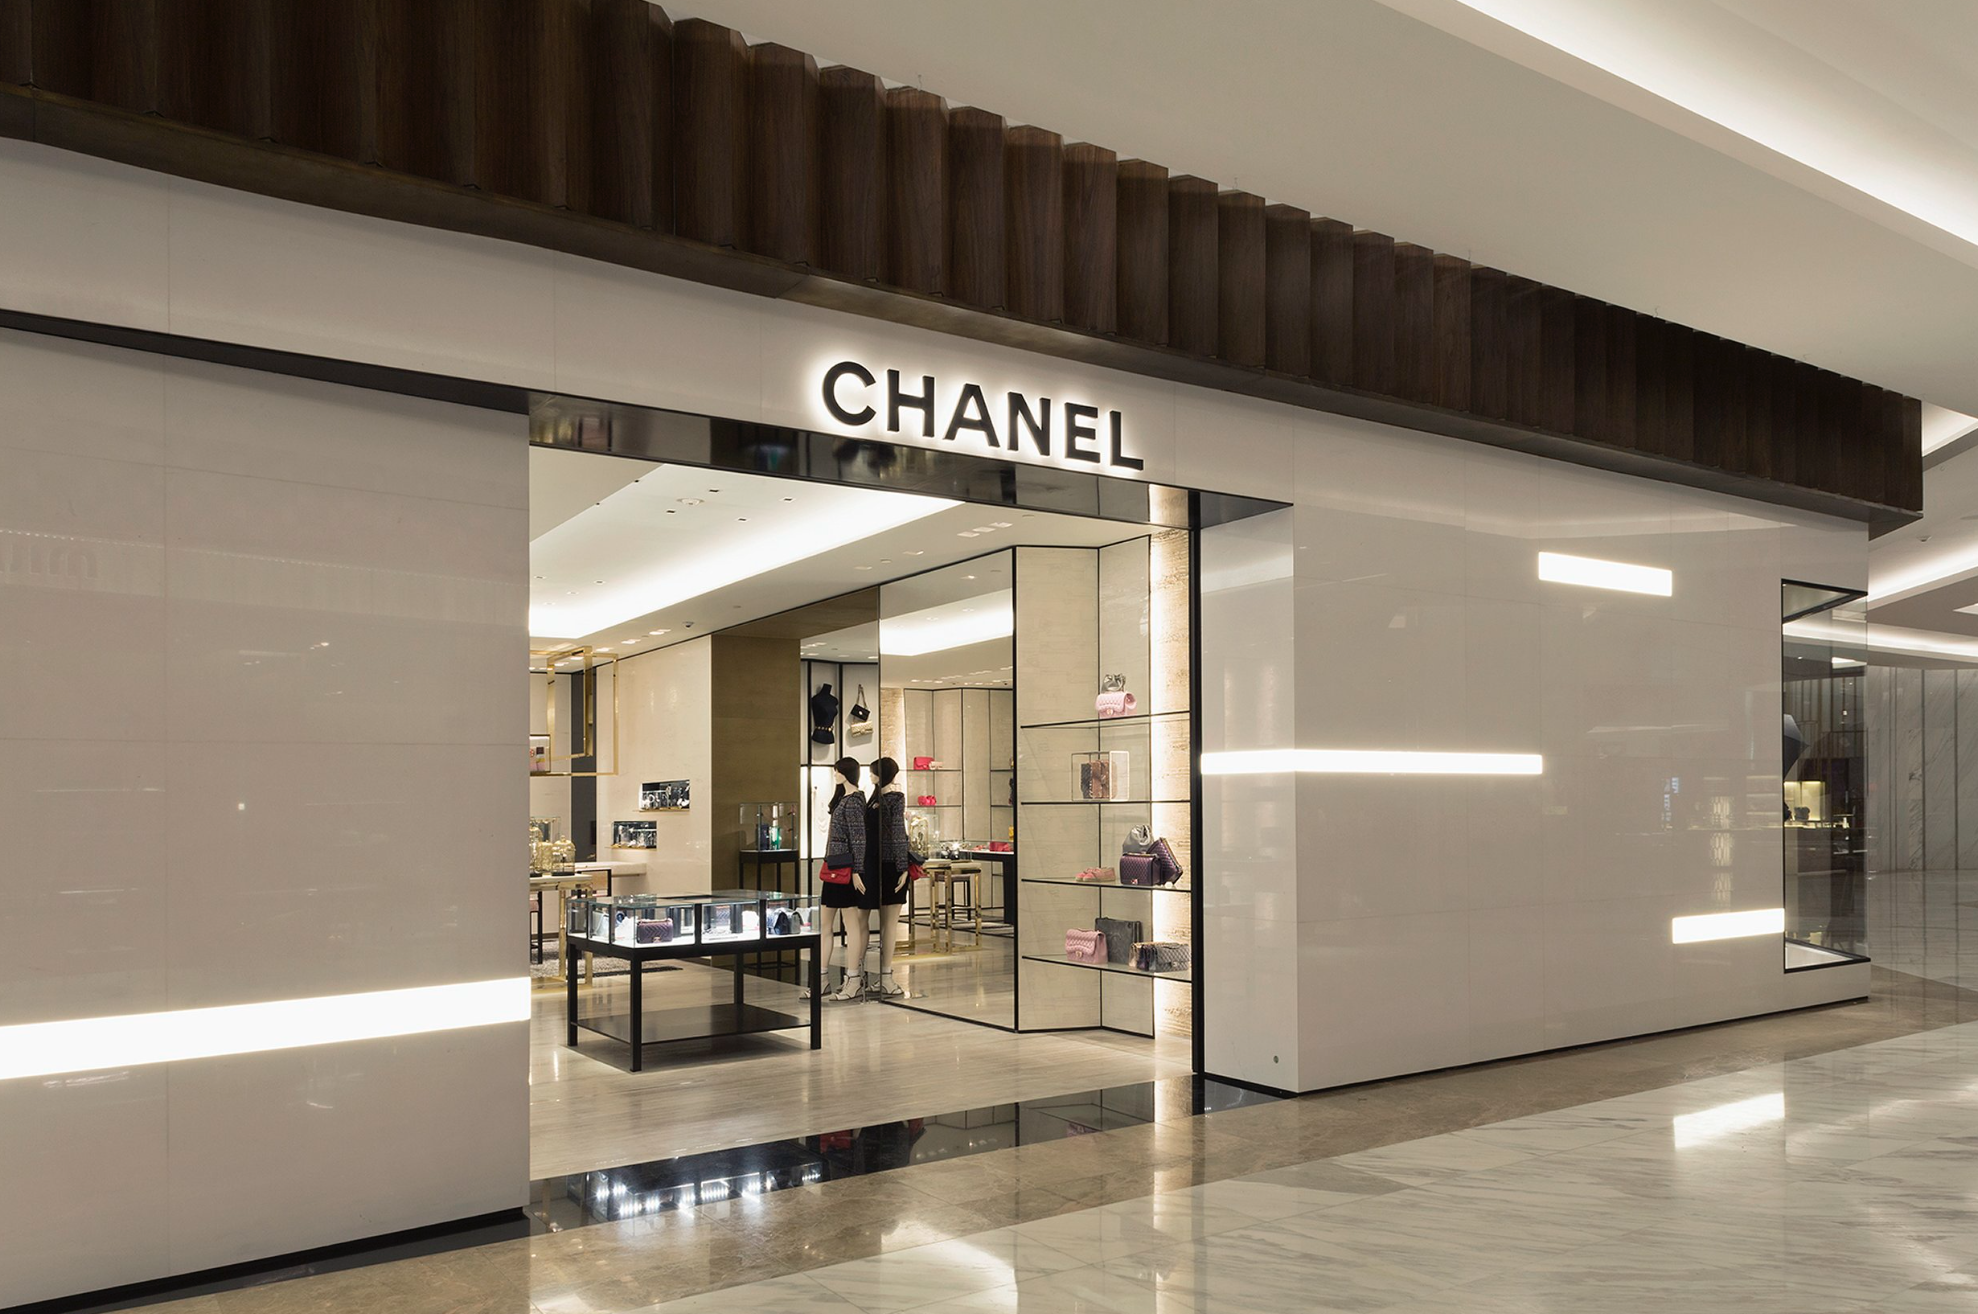 CHANEL boutique, El Palacio de Hierro Polanco, Mexico City, picture 018